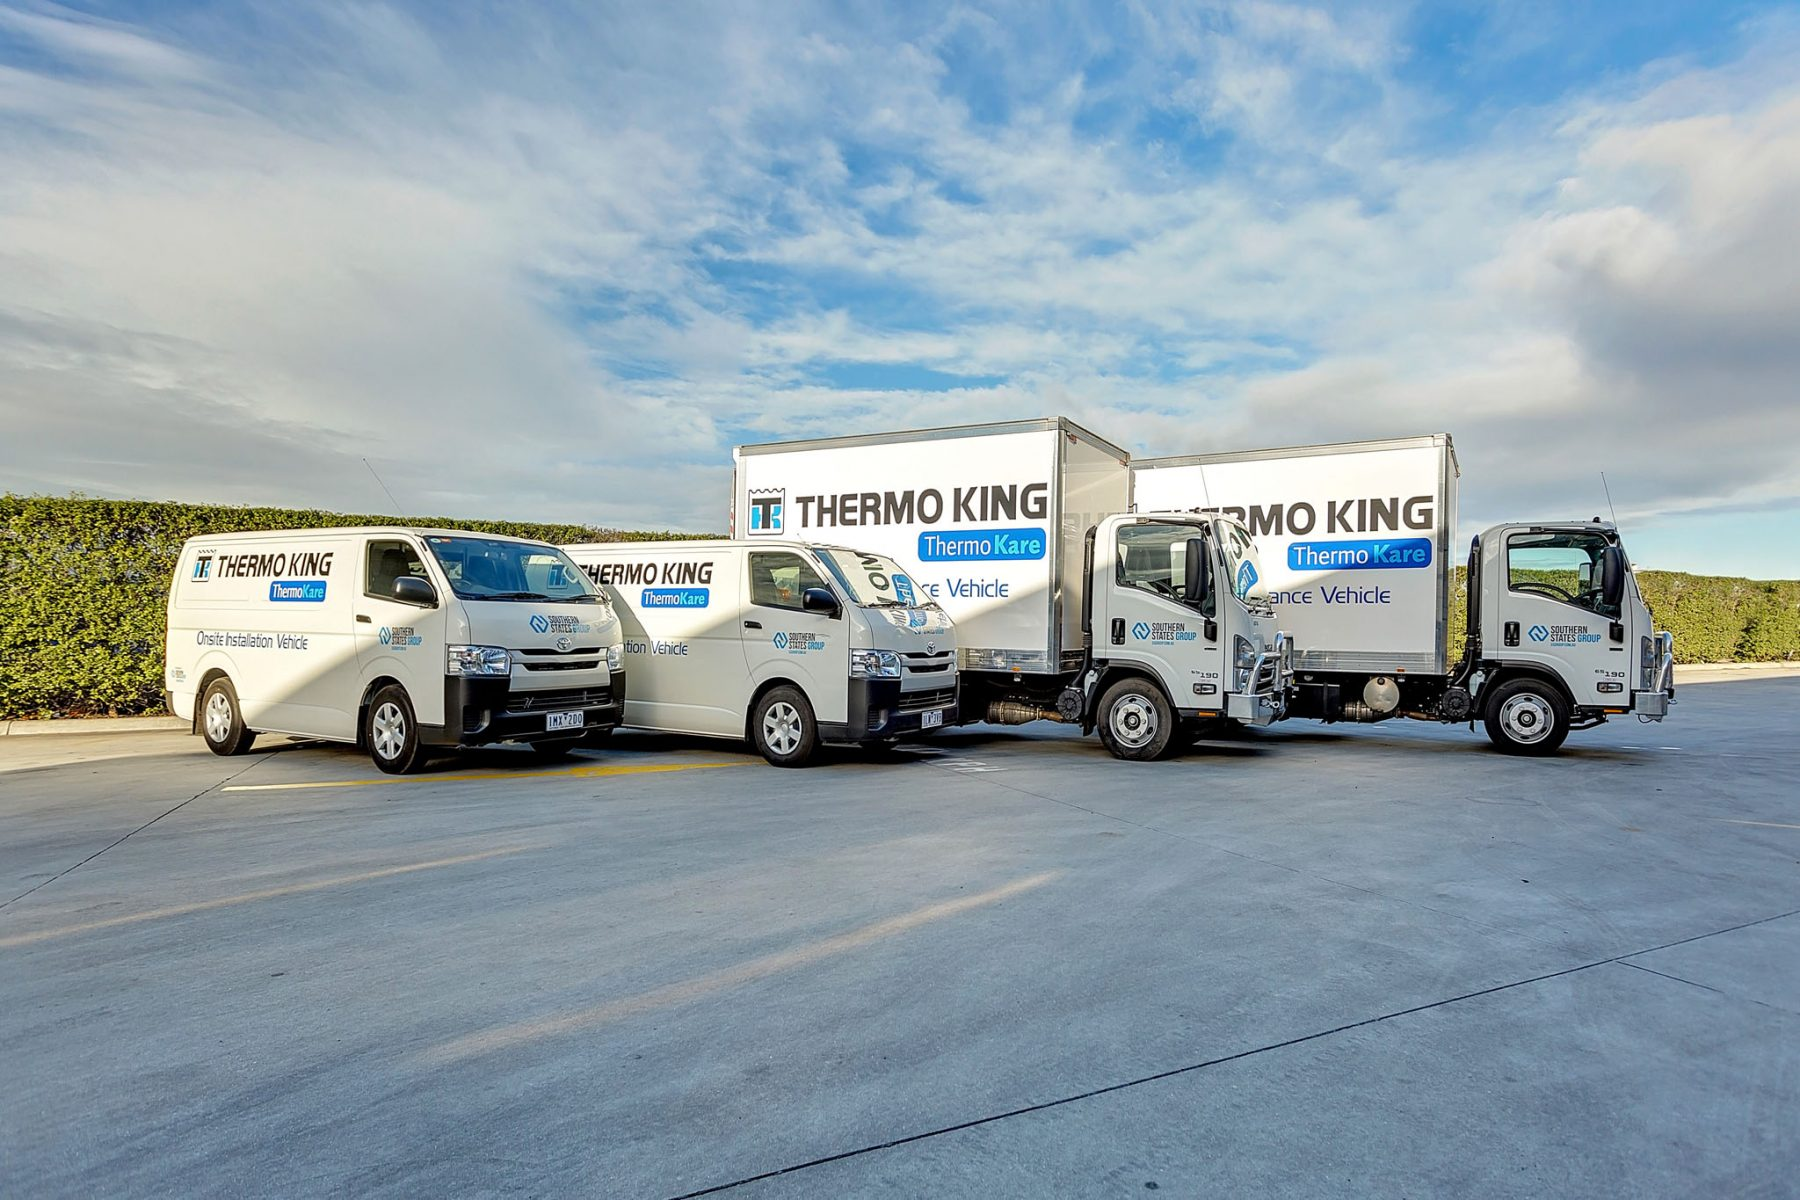 On site maintenance vehicles - Thermo King